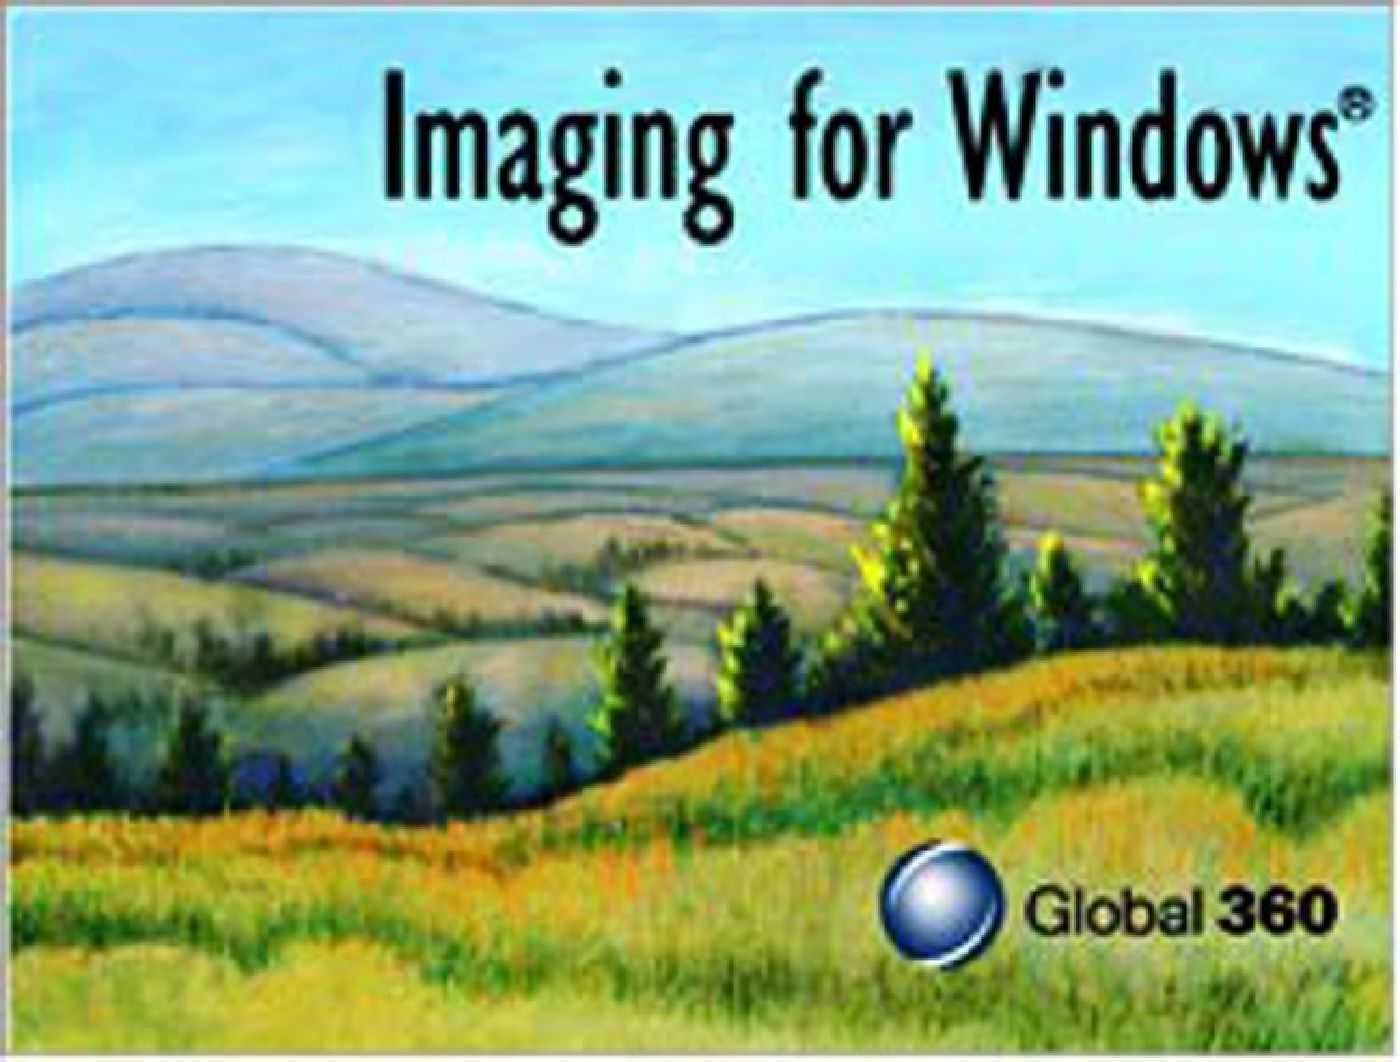 Imaging for windows wikivisually.